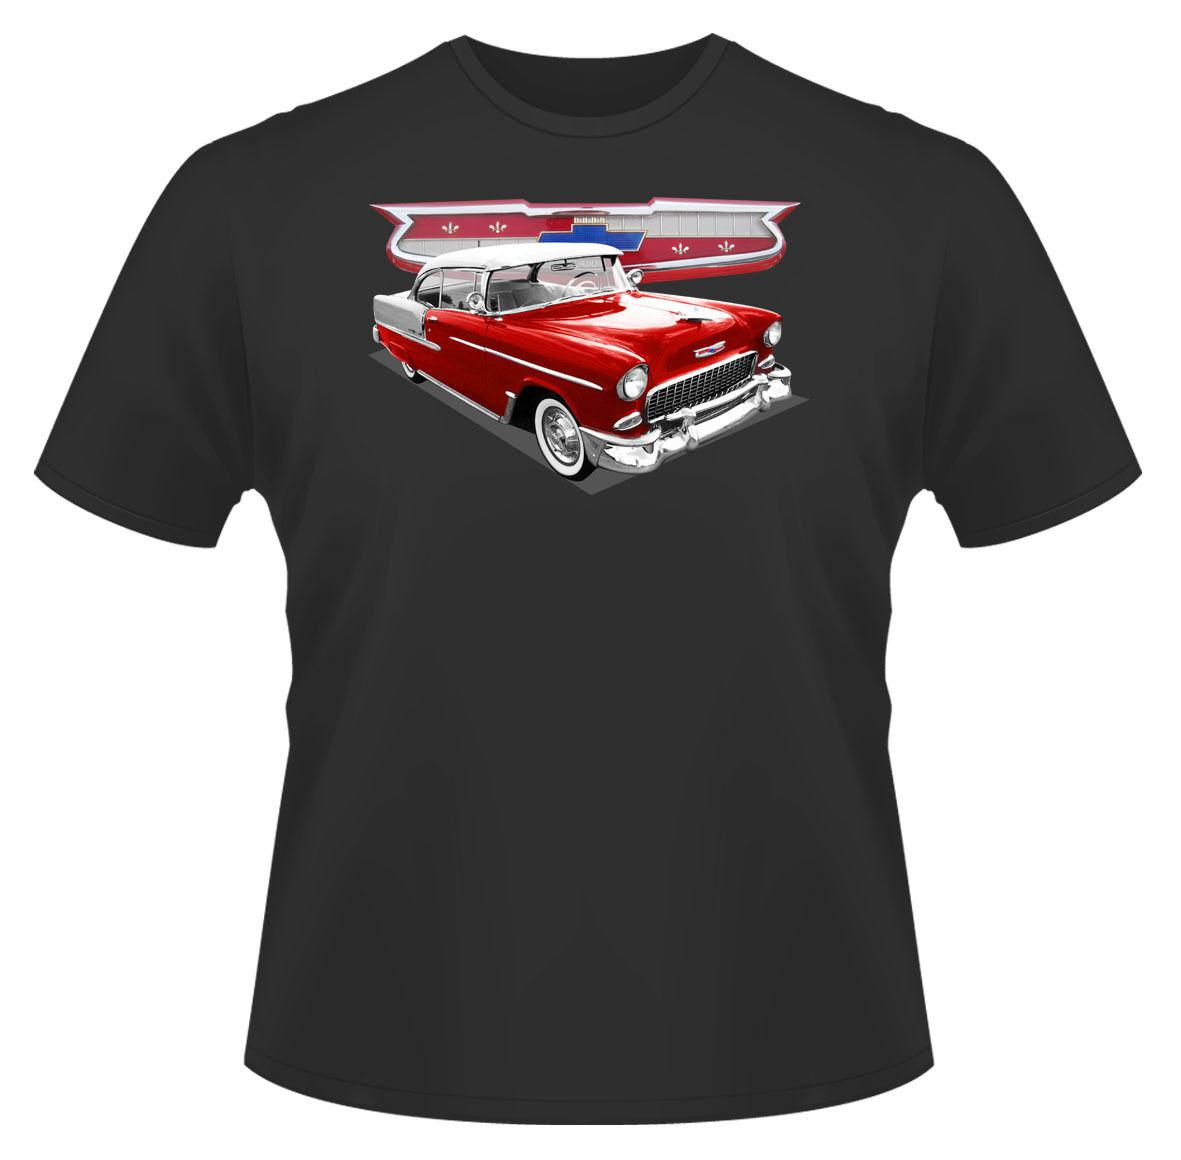 Mens T Shirt Chevrolet Bel Air Classic Car Birthday Gift Or Present Awesome Shirts For Guys Cool Tee Designs From Yg04tshirt 1205